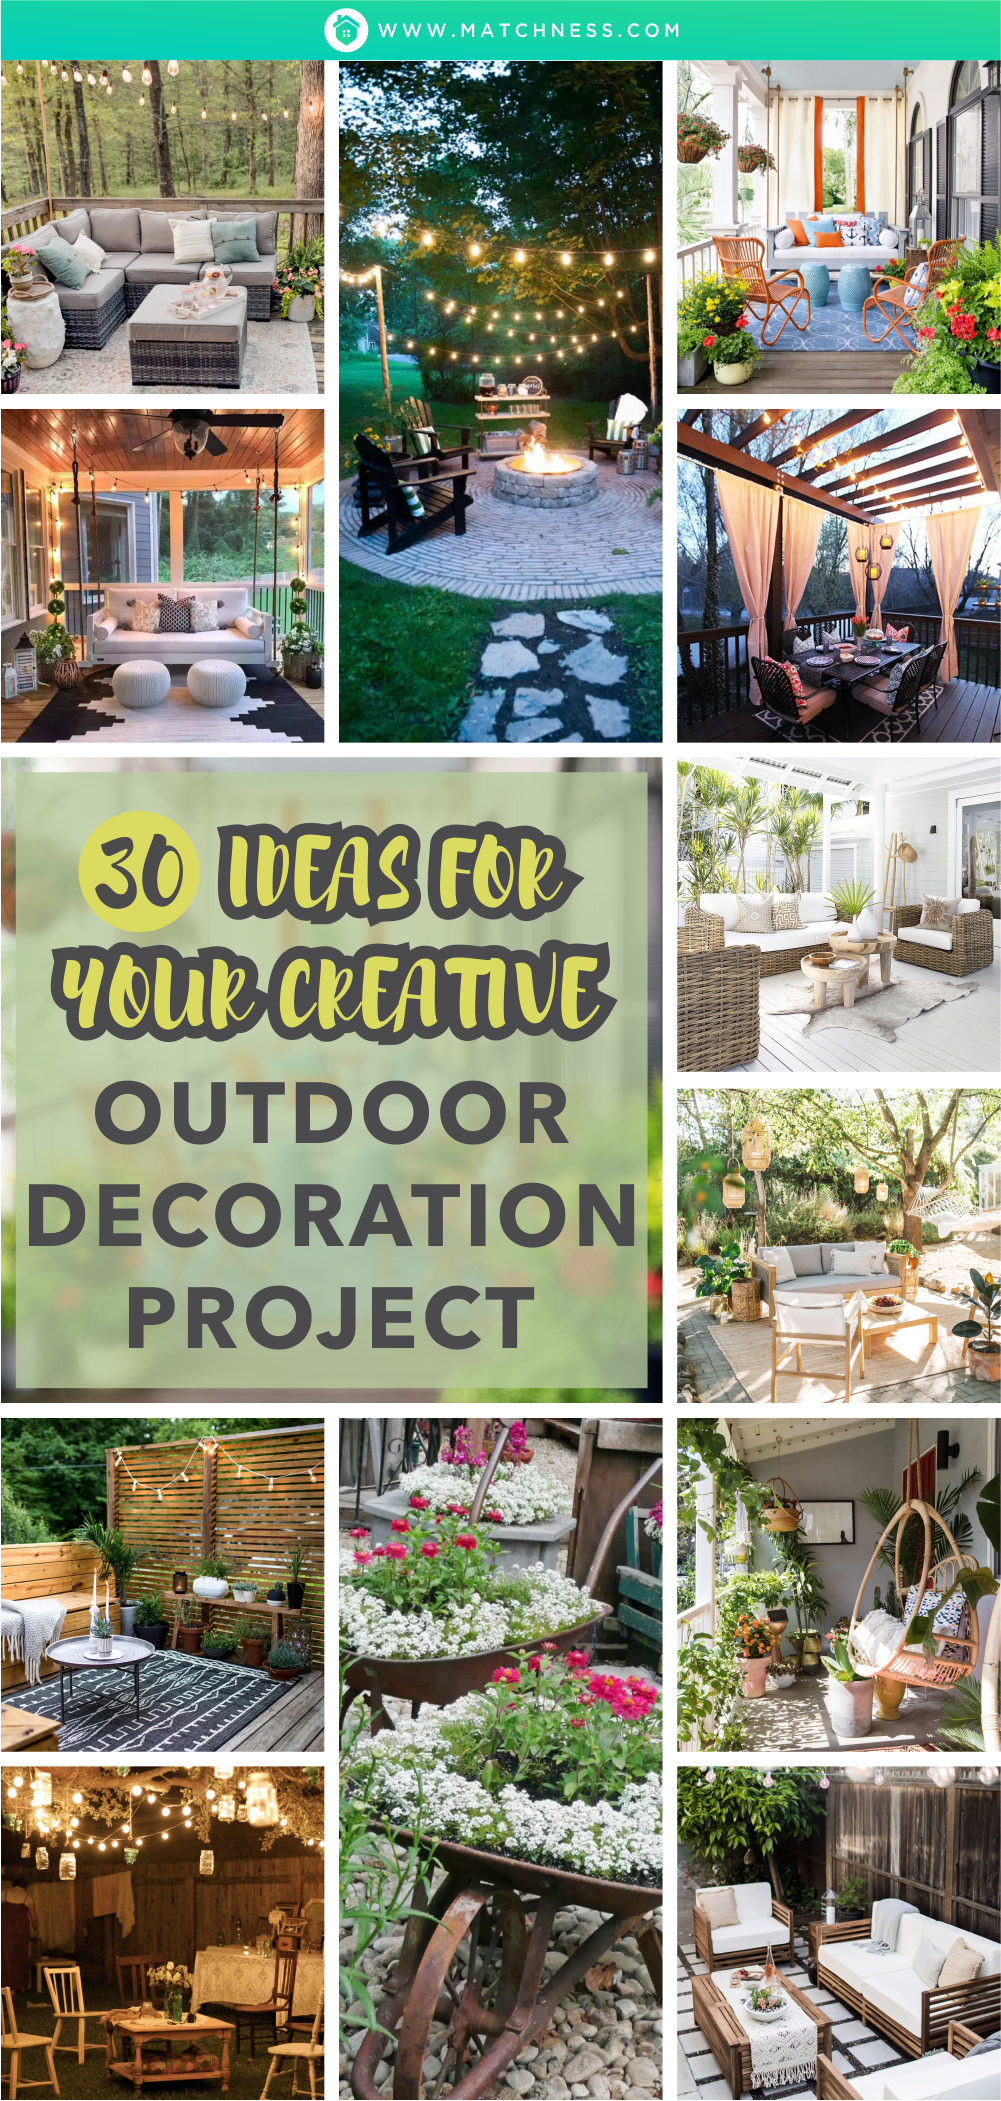 30-ideas-for-your-creative-outdoor-decoration-project-1